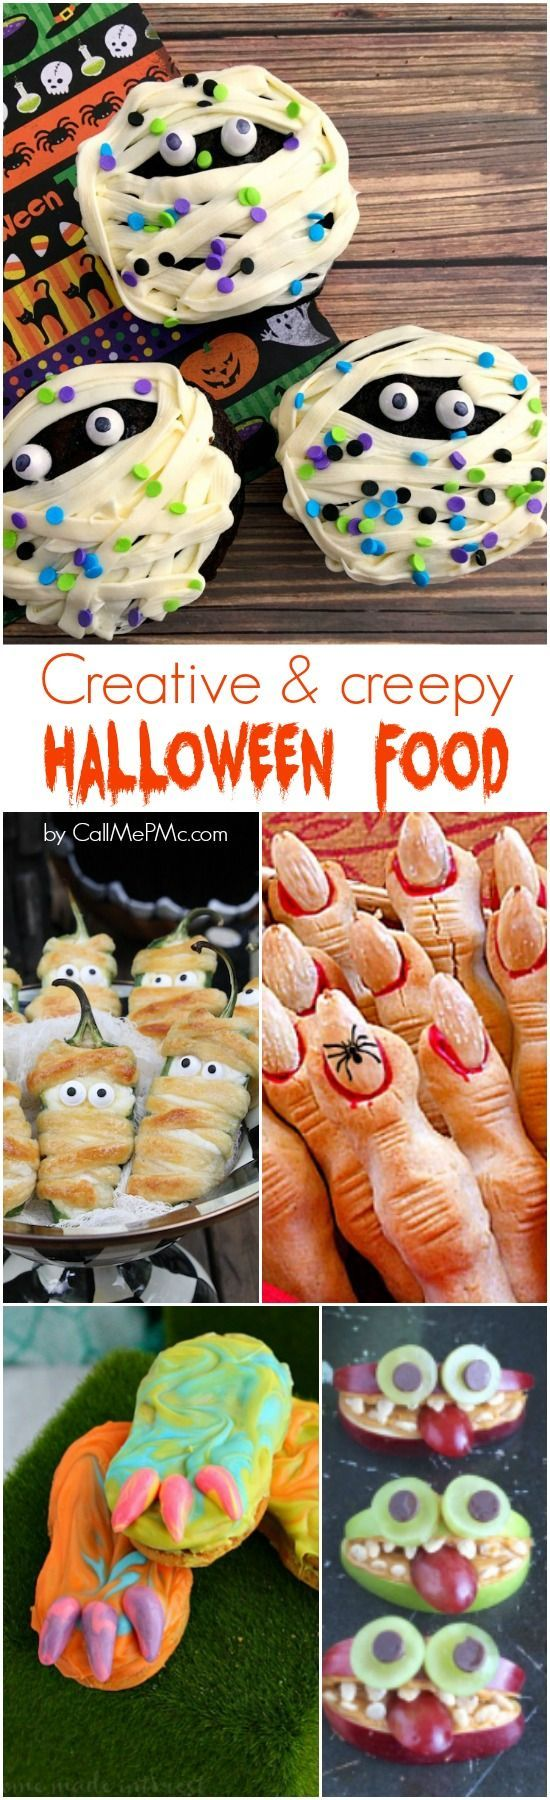 Kids and adults alike love Creative Creepy Halloween Food. Have fun reviewing the recipes below and make them for your Halloween parties or kids' snacks.